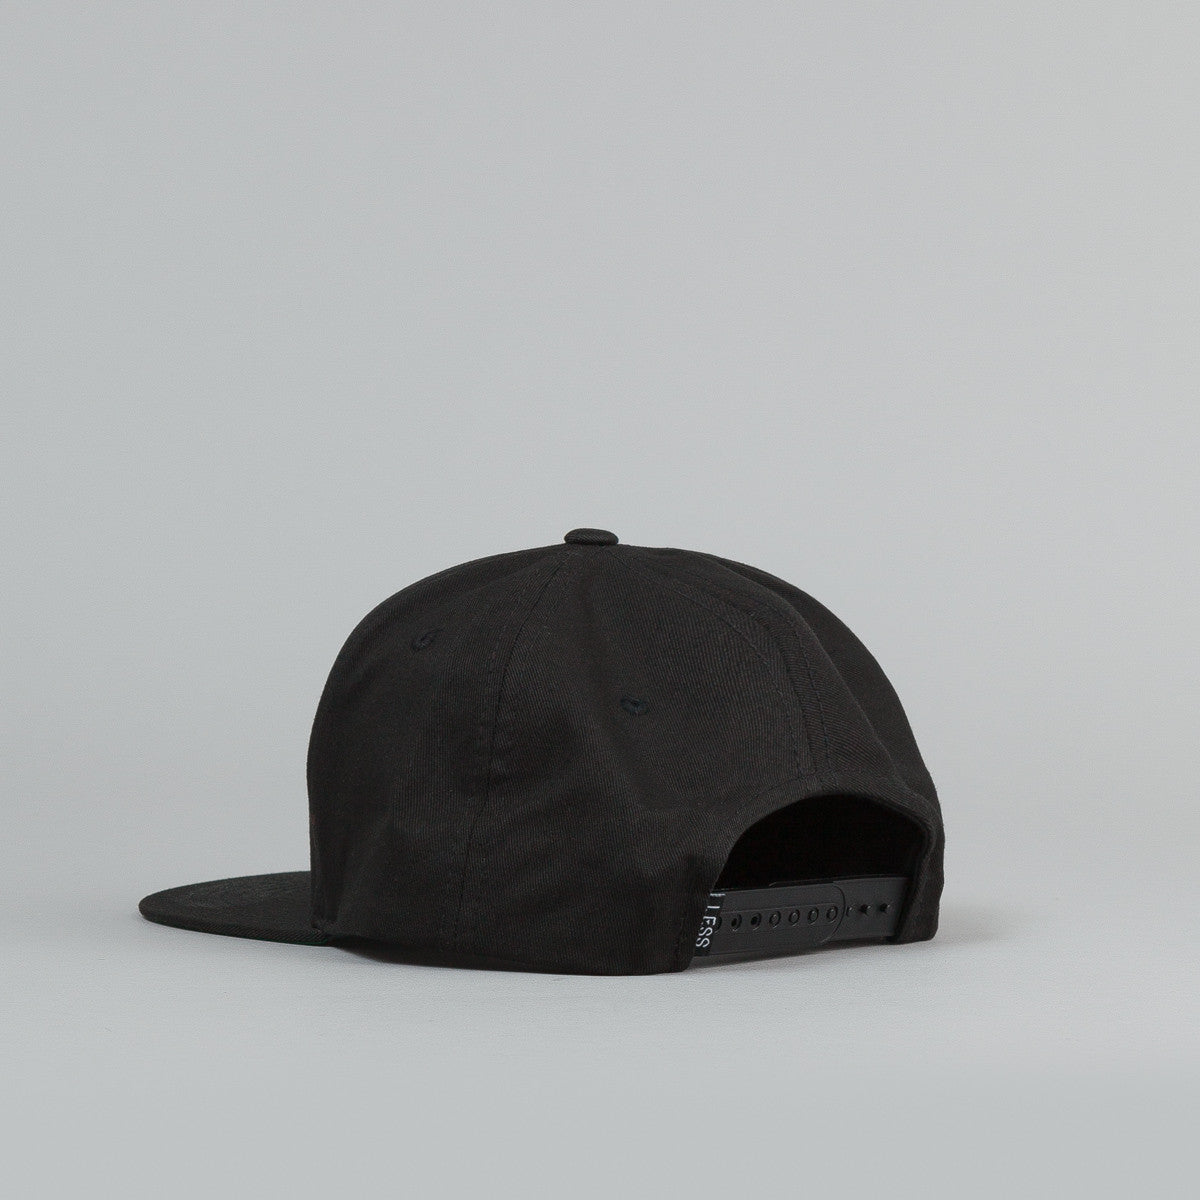 Less x Interbreed Bear Snapback Cap - Black